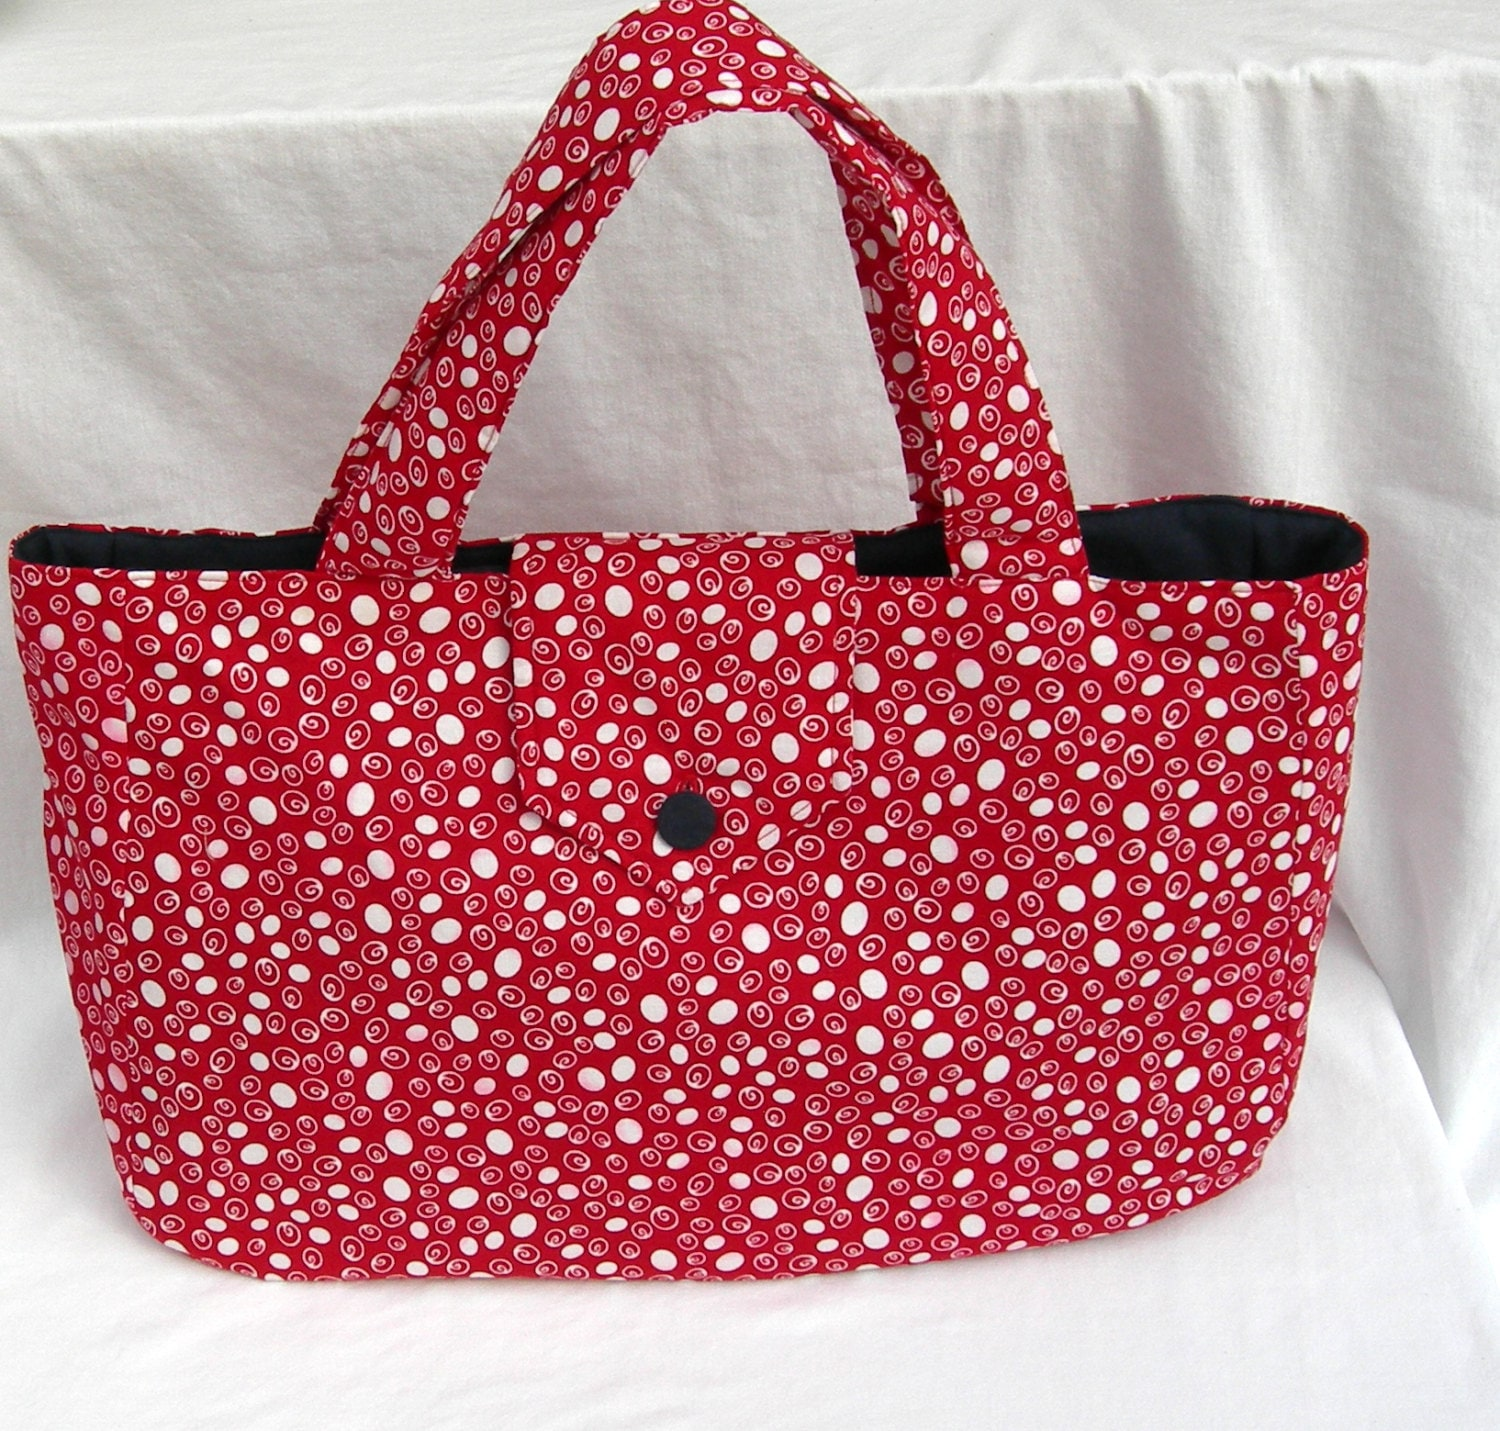 Zippered Knitting Bag : Zippered red fabric knitting bag large with